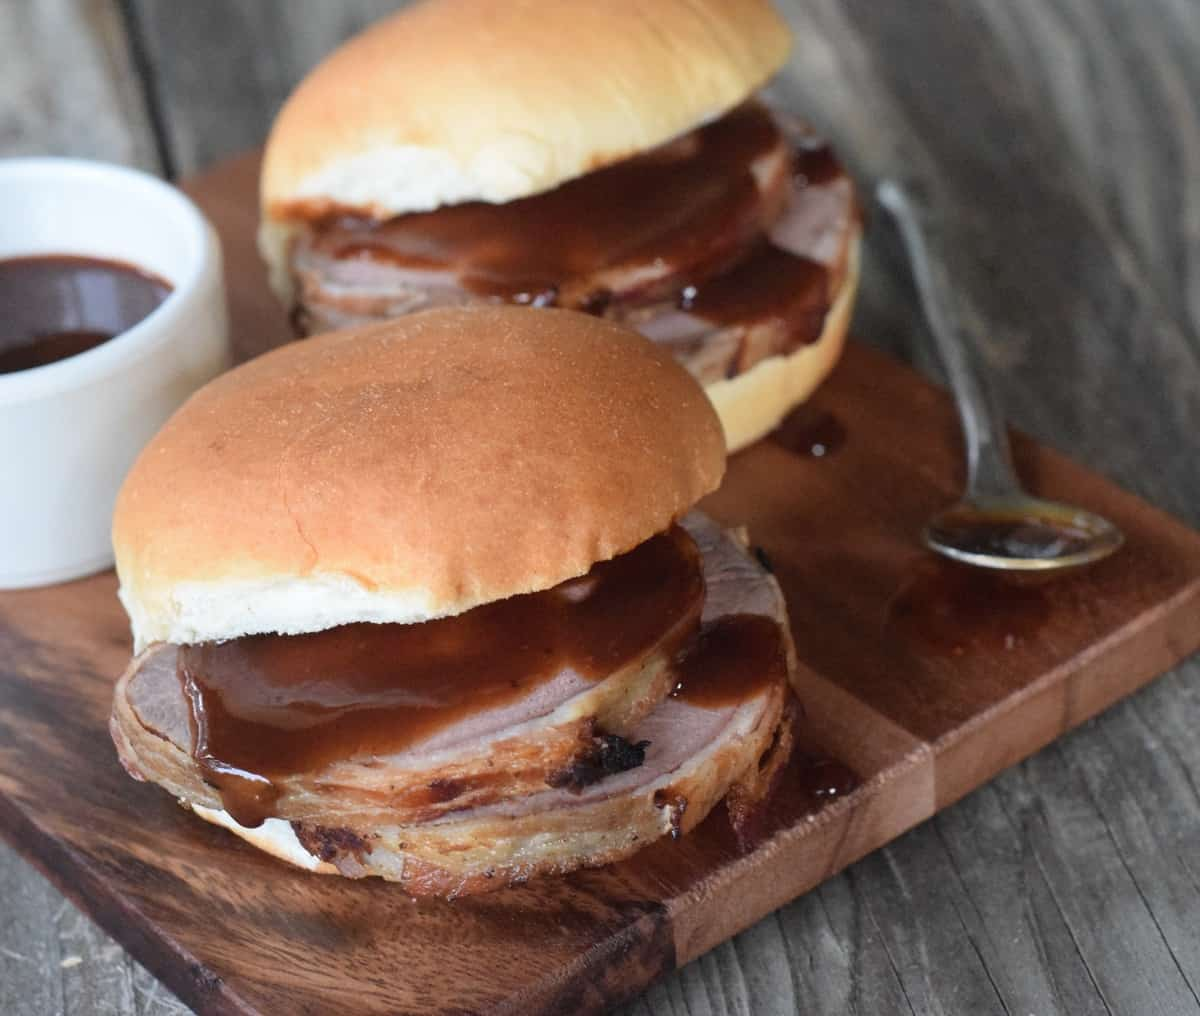 Two venison sliders on wooden cutting board with bbq sauce dripping